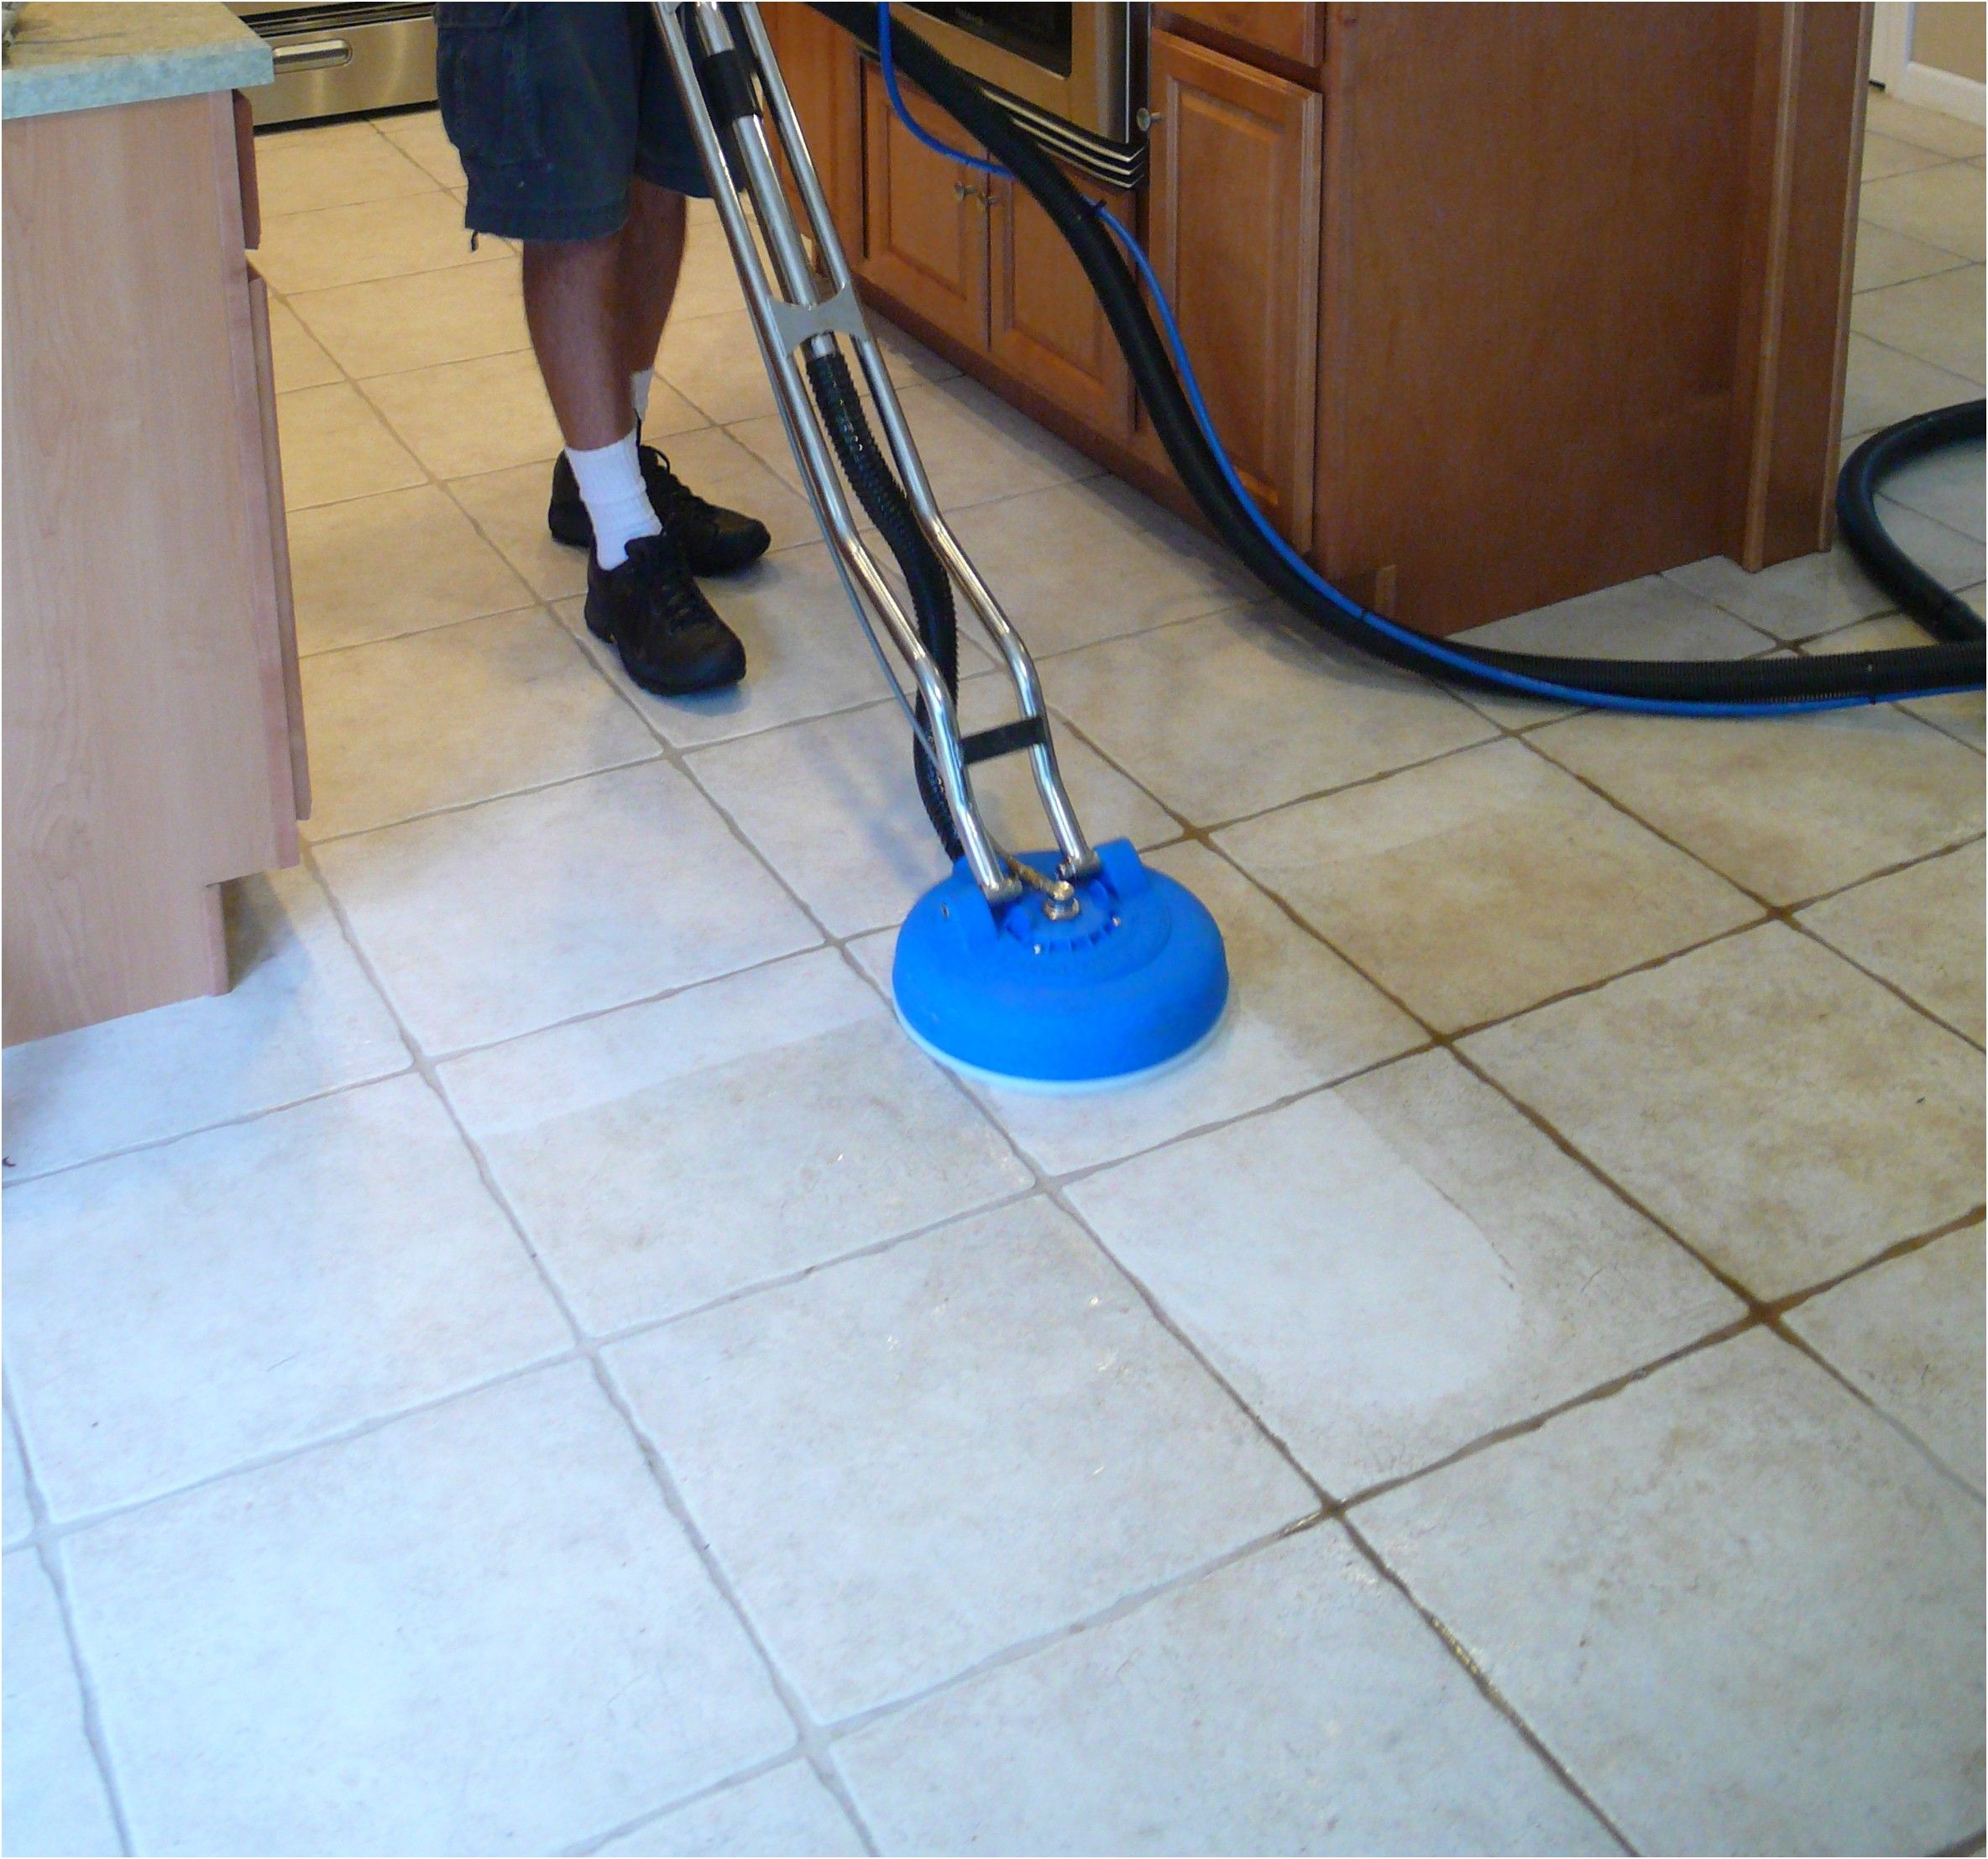 Easiest Way To Clean Bathroom Tiles 7 Most Powerful Ways To Clean From Best Way To Clean Bathroom Floor Tile Grout